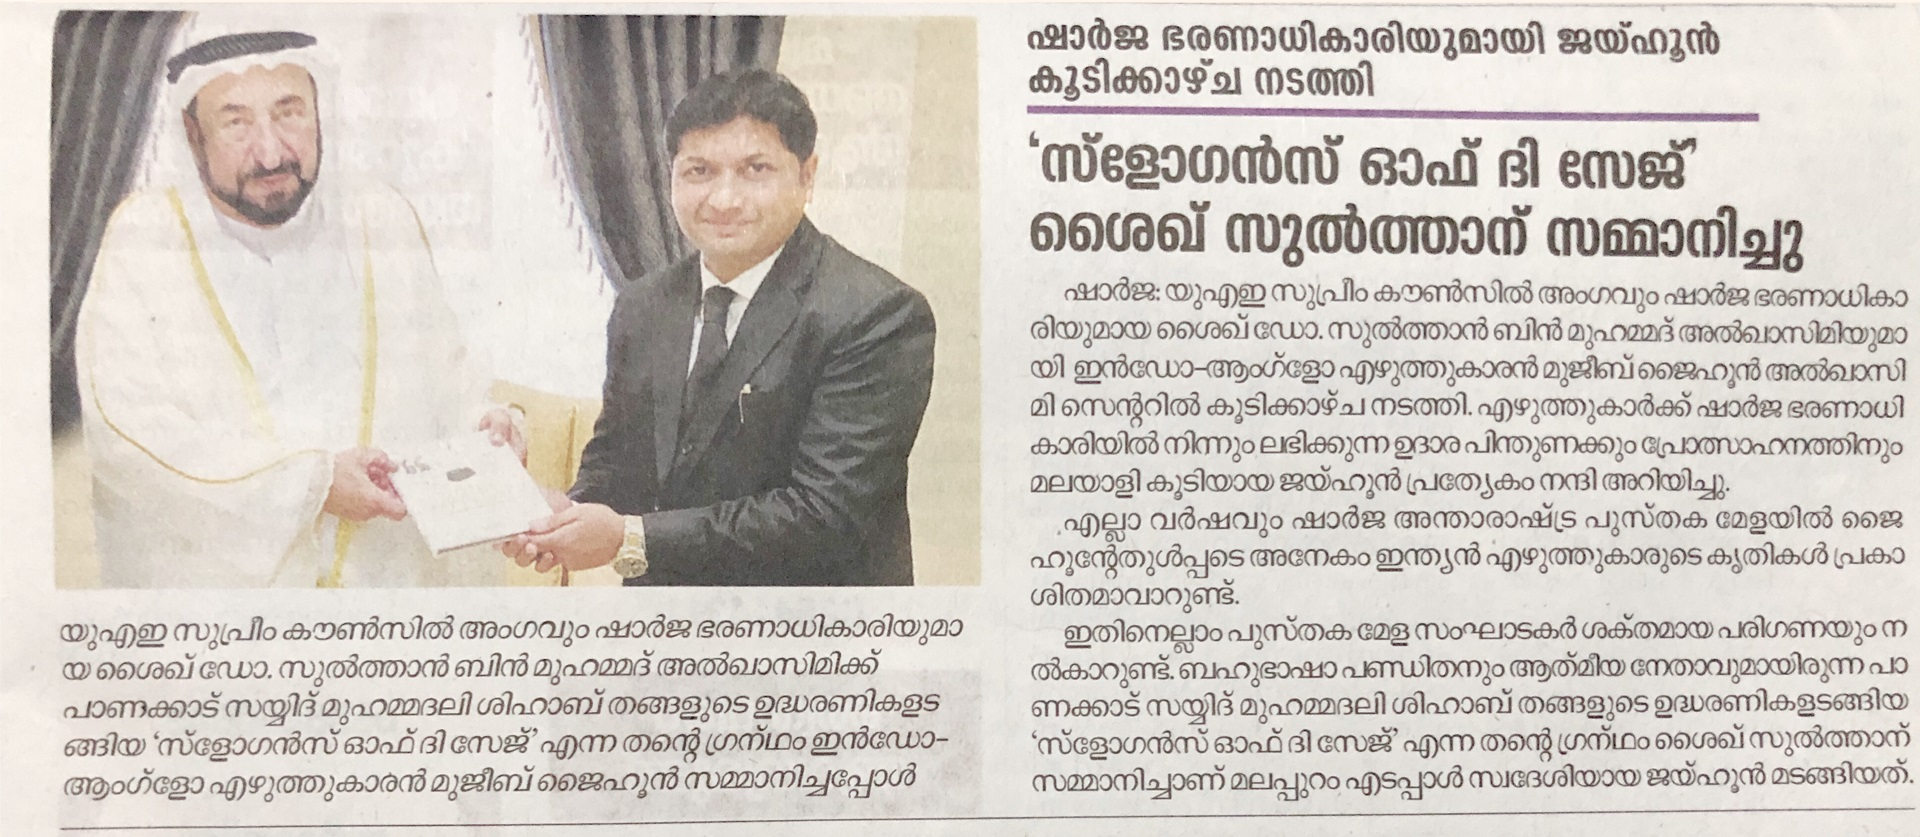 News Published in middle east Chandrika, Nov 20 2019